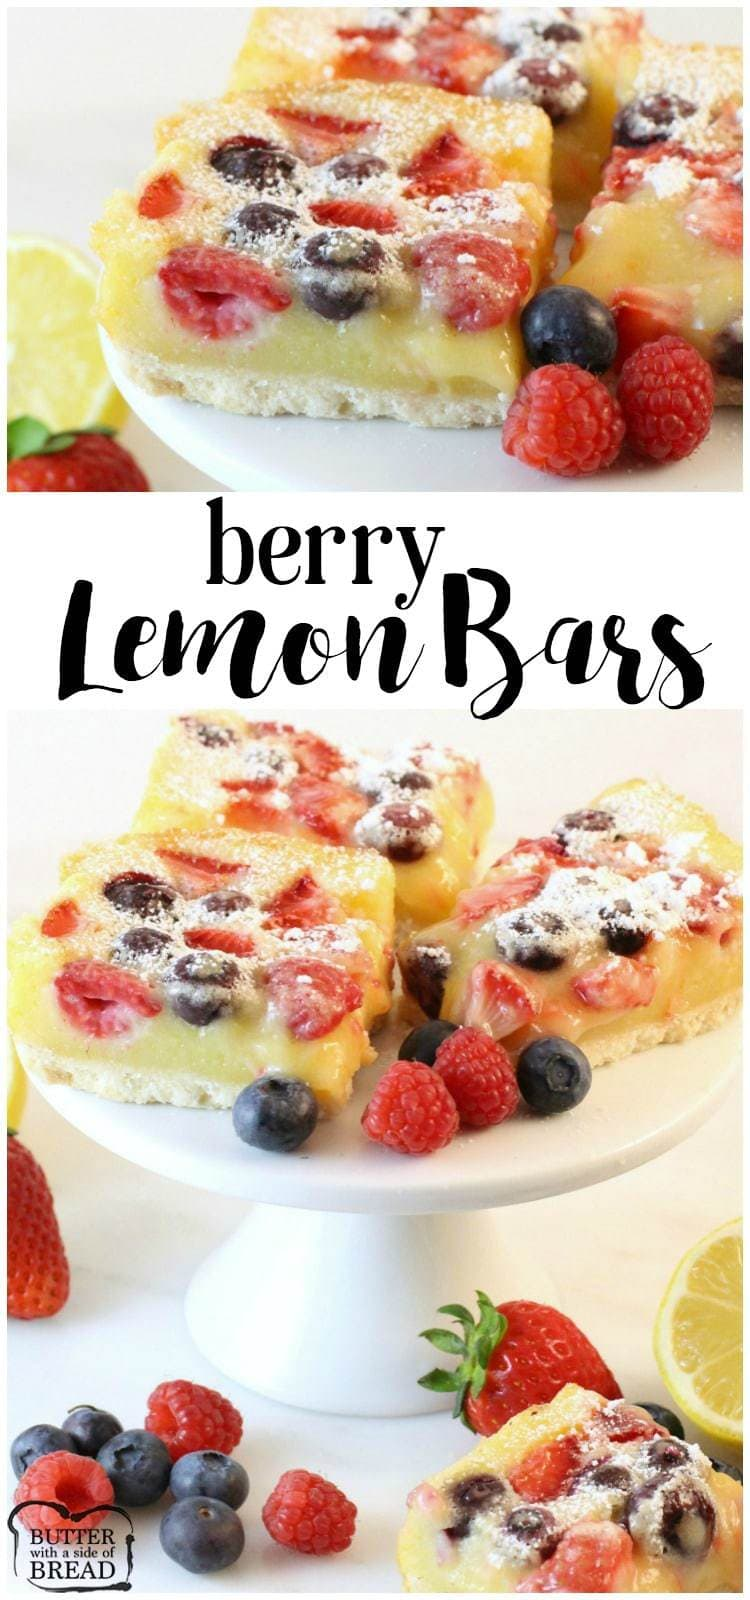 Berry Lemon Bar Recipe - Butter With A Side of Bread